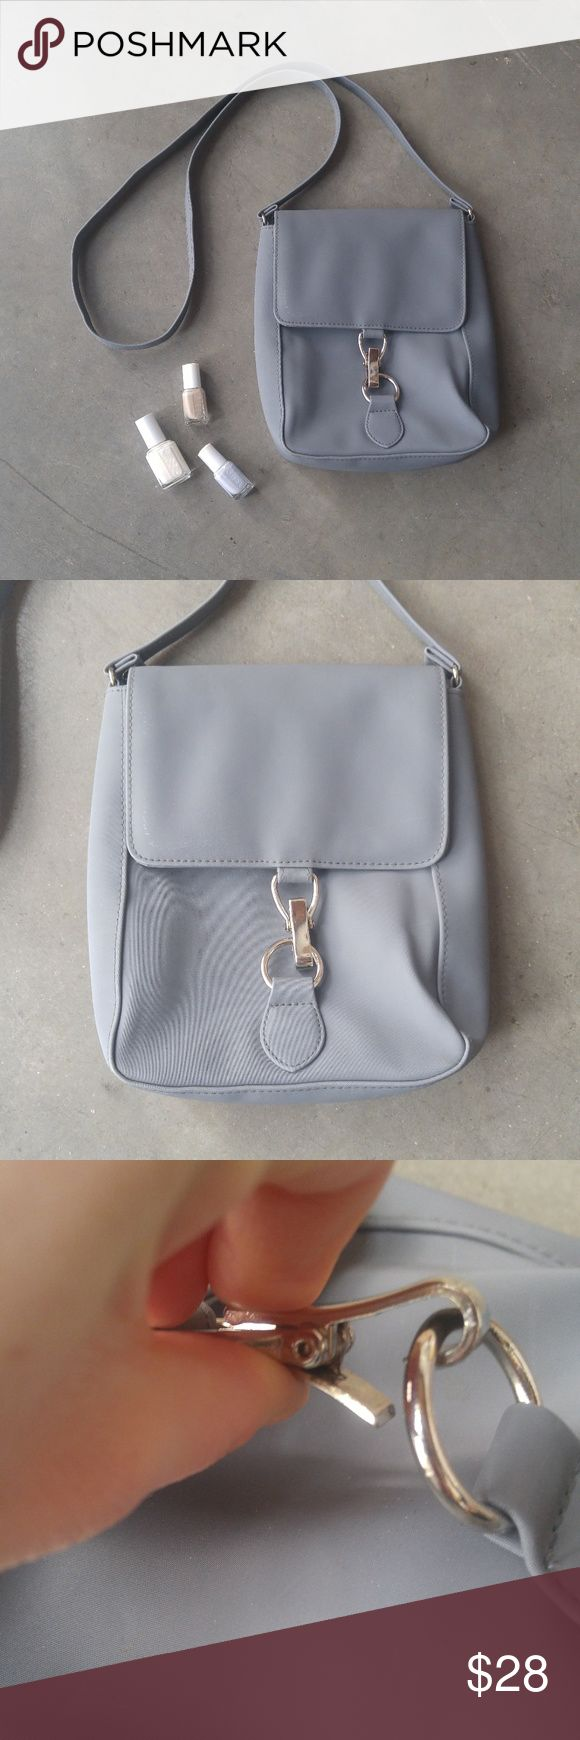 Gray Square Shoulder Bag Gray square shoulder bag in excellent condition! Minor scratches on front (4th photo) and minor water spots (I think) on back (7th photo). Classy neutral gray with silver clasp in front. Vinyl material. One inner pocket. No brand tag. No trades. No modeling. Make a reasonable offer. Thanks! *Cover photo accessories not included* Bags Shoulder Bags